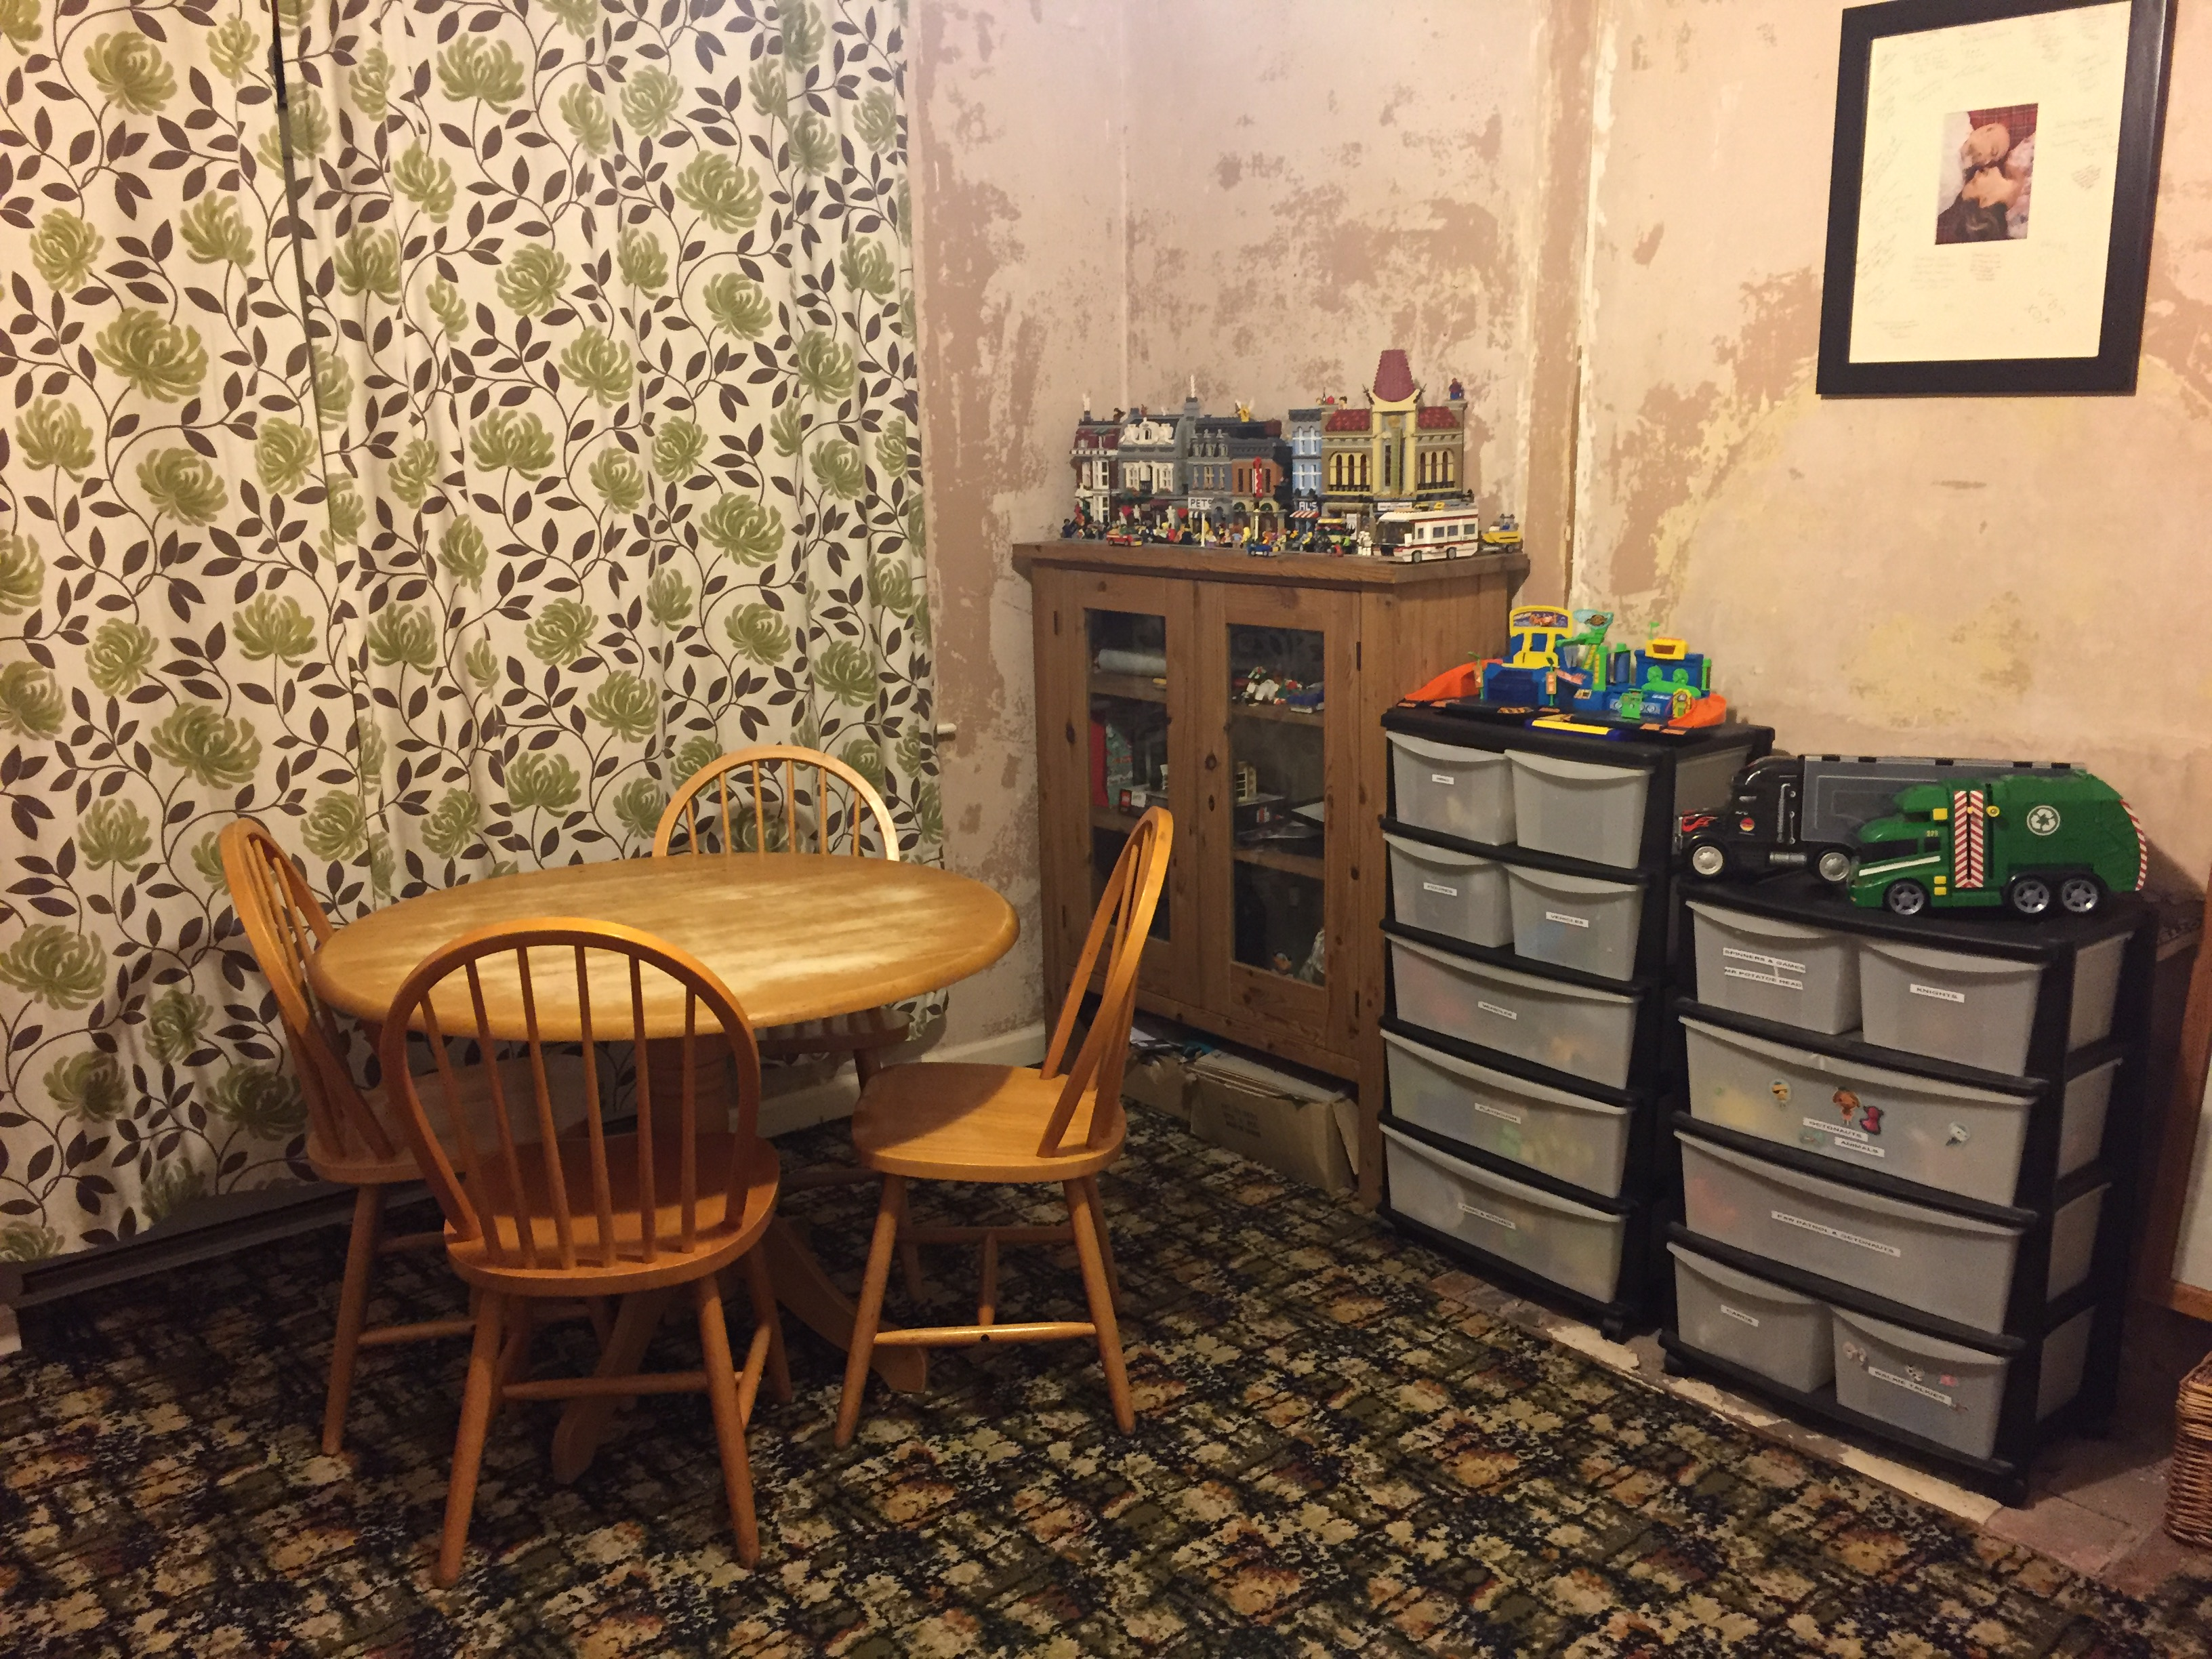 Playroom After, organised toys and crafts